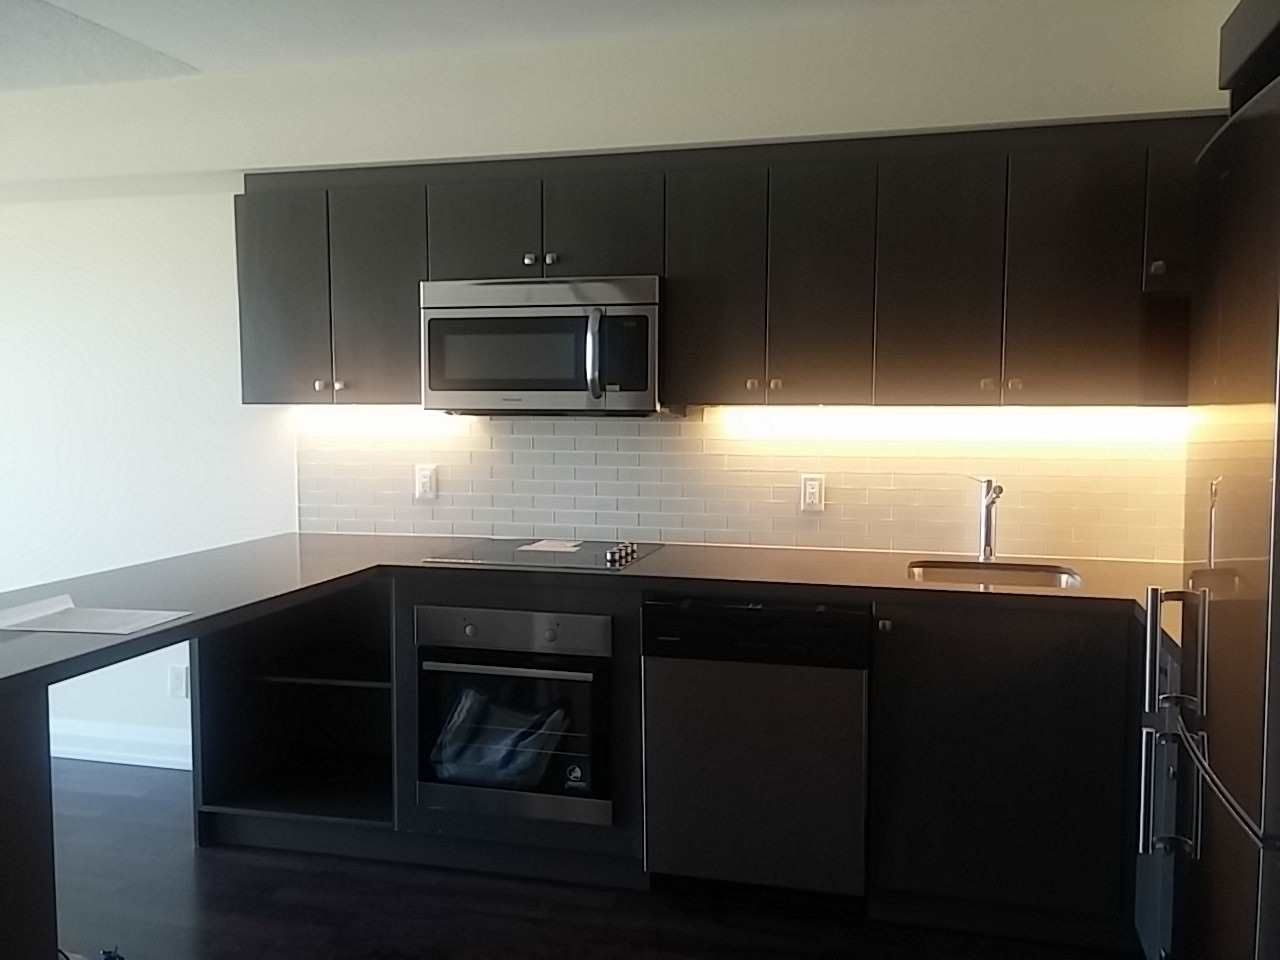 565 Wilson Ave, unit 1007 for rent in Toronto - image #2